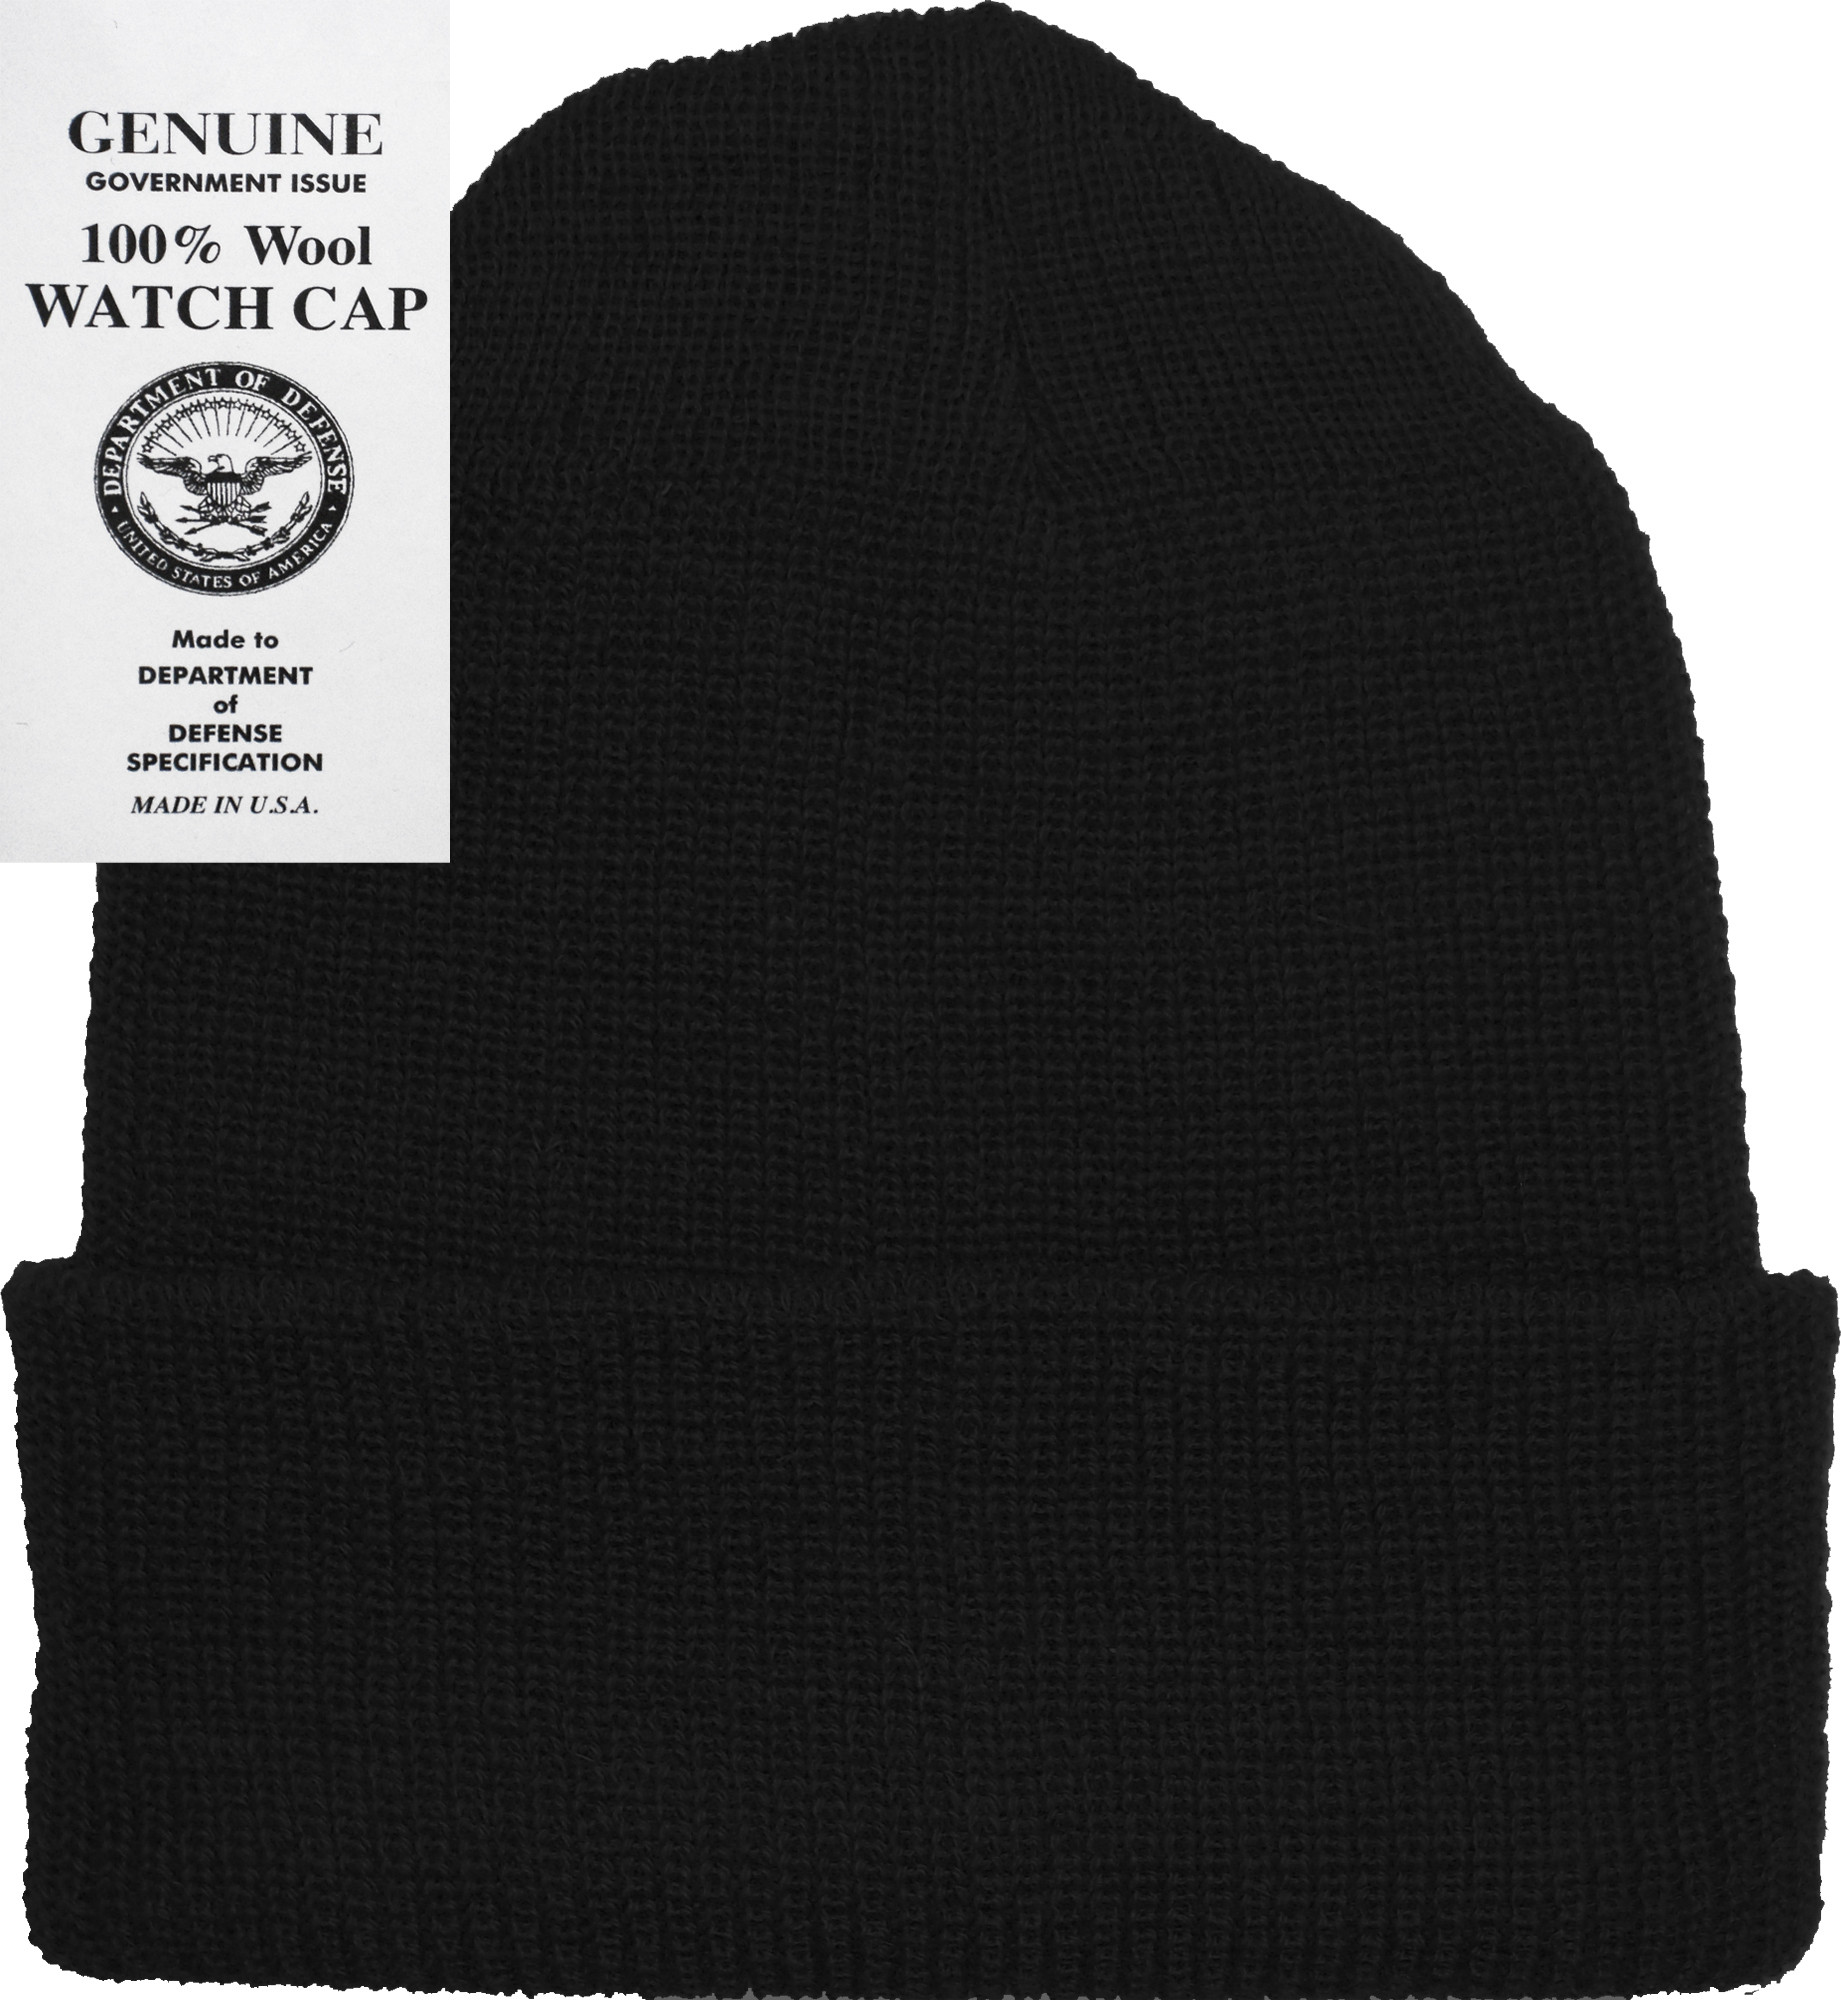 Military Genuine GI Winter USN Warm Wool Hat Watch Cap d94fabe58